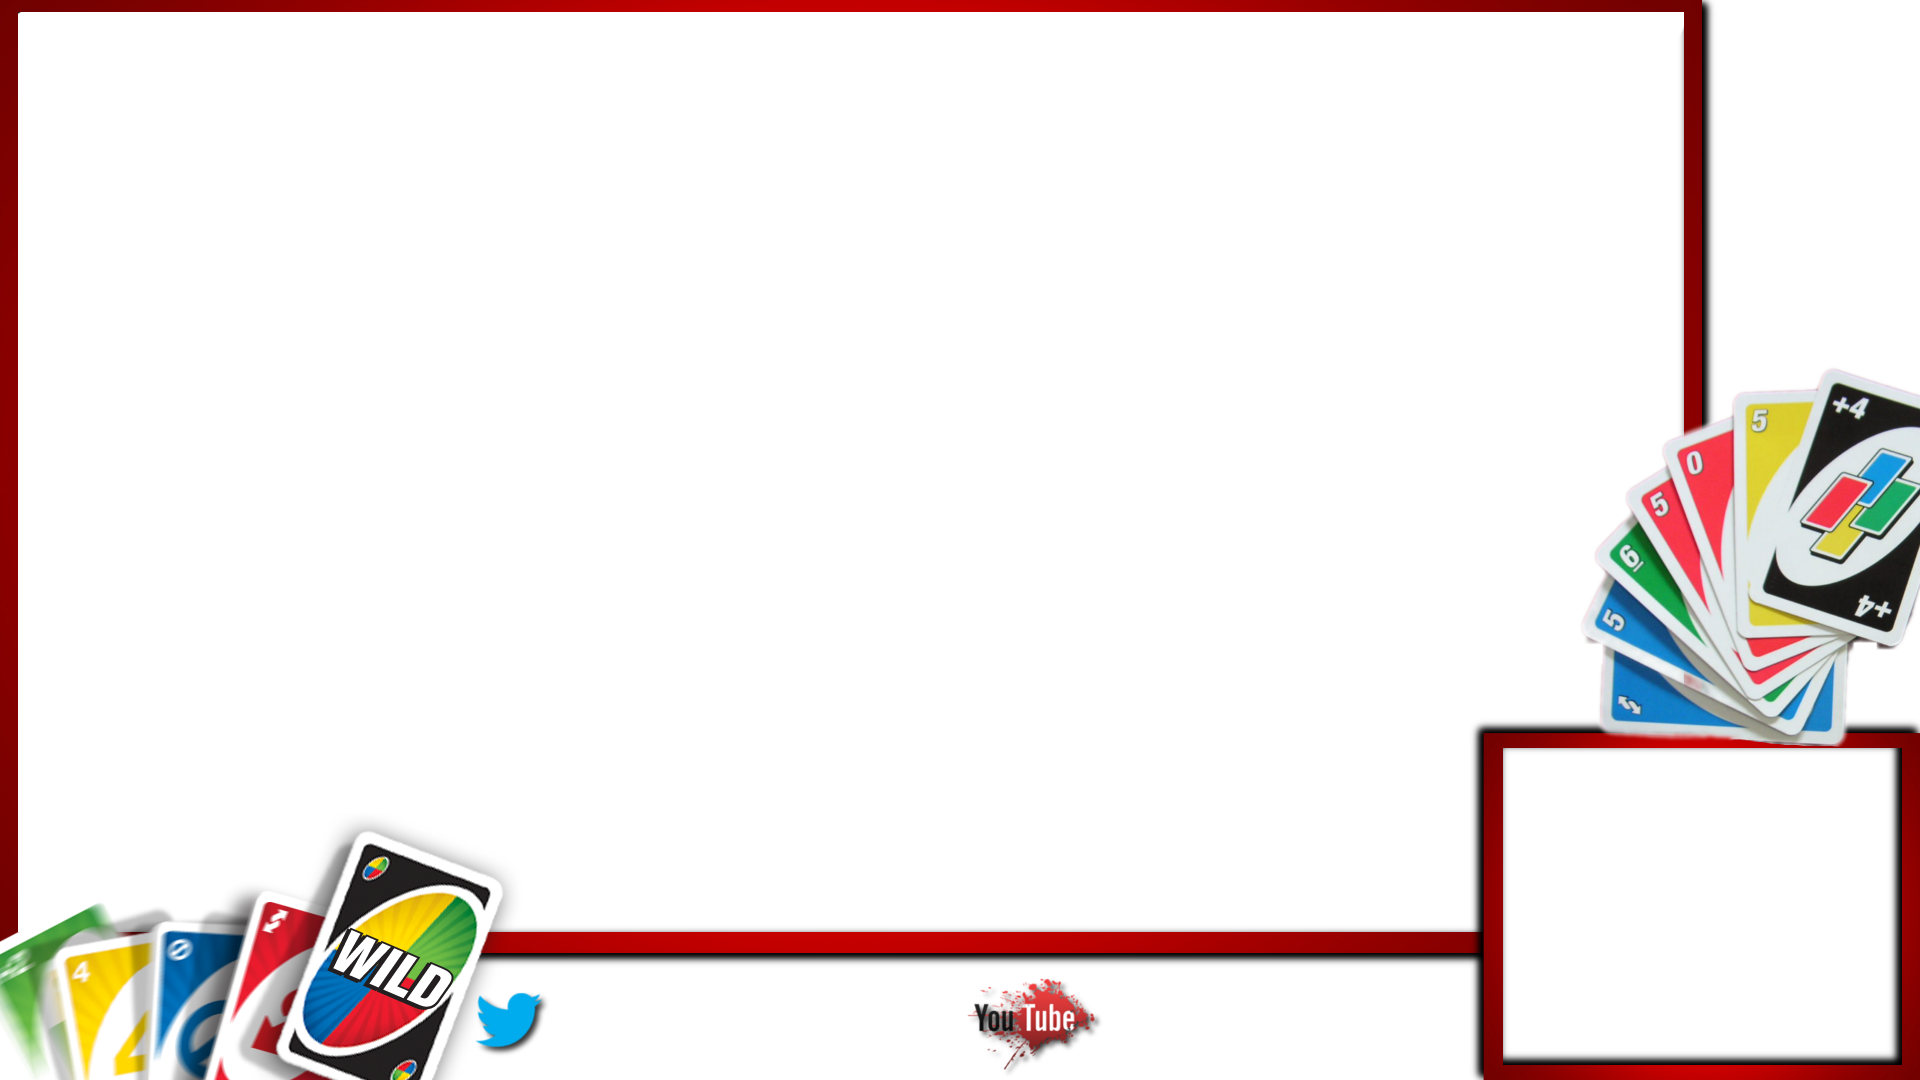 uno twitch overlay